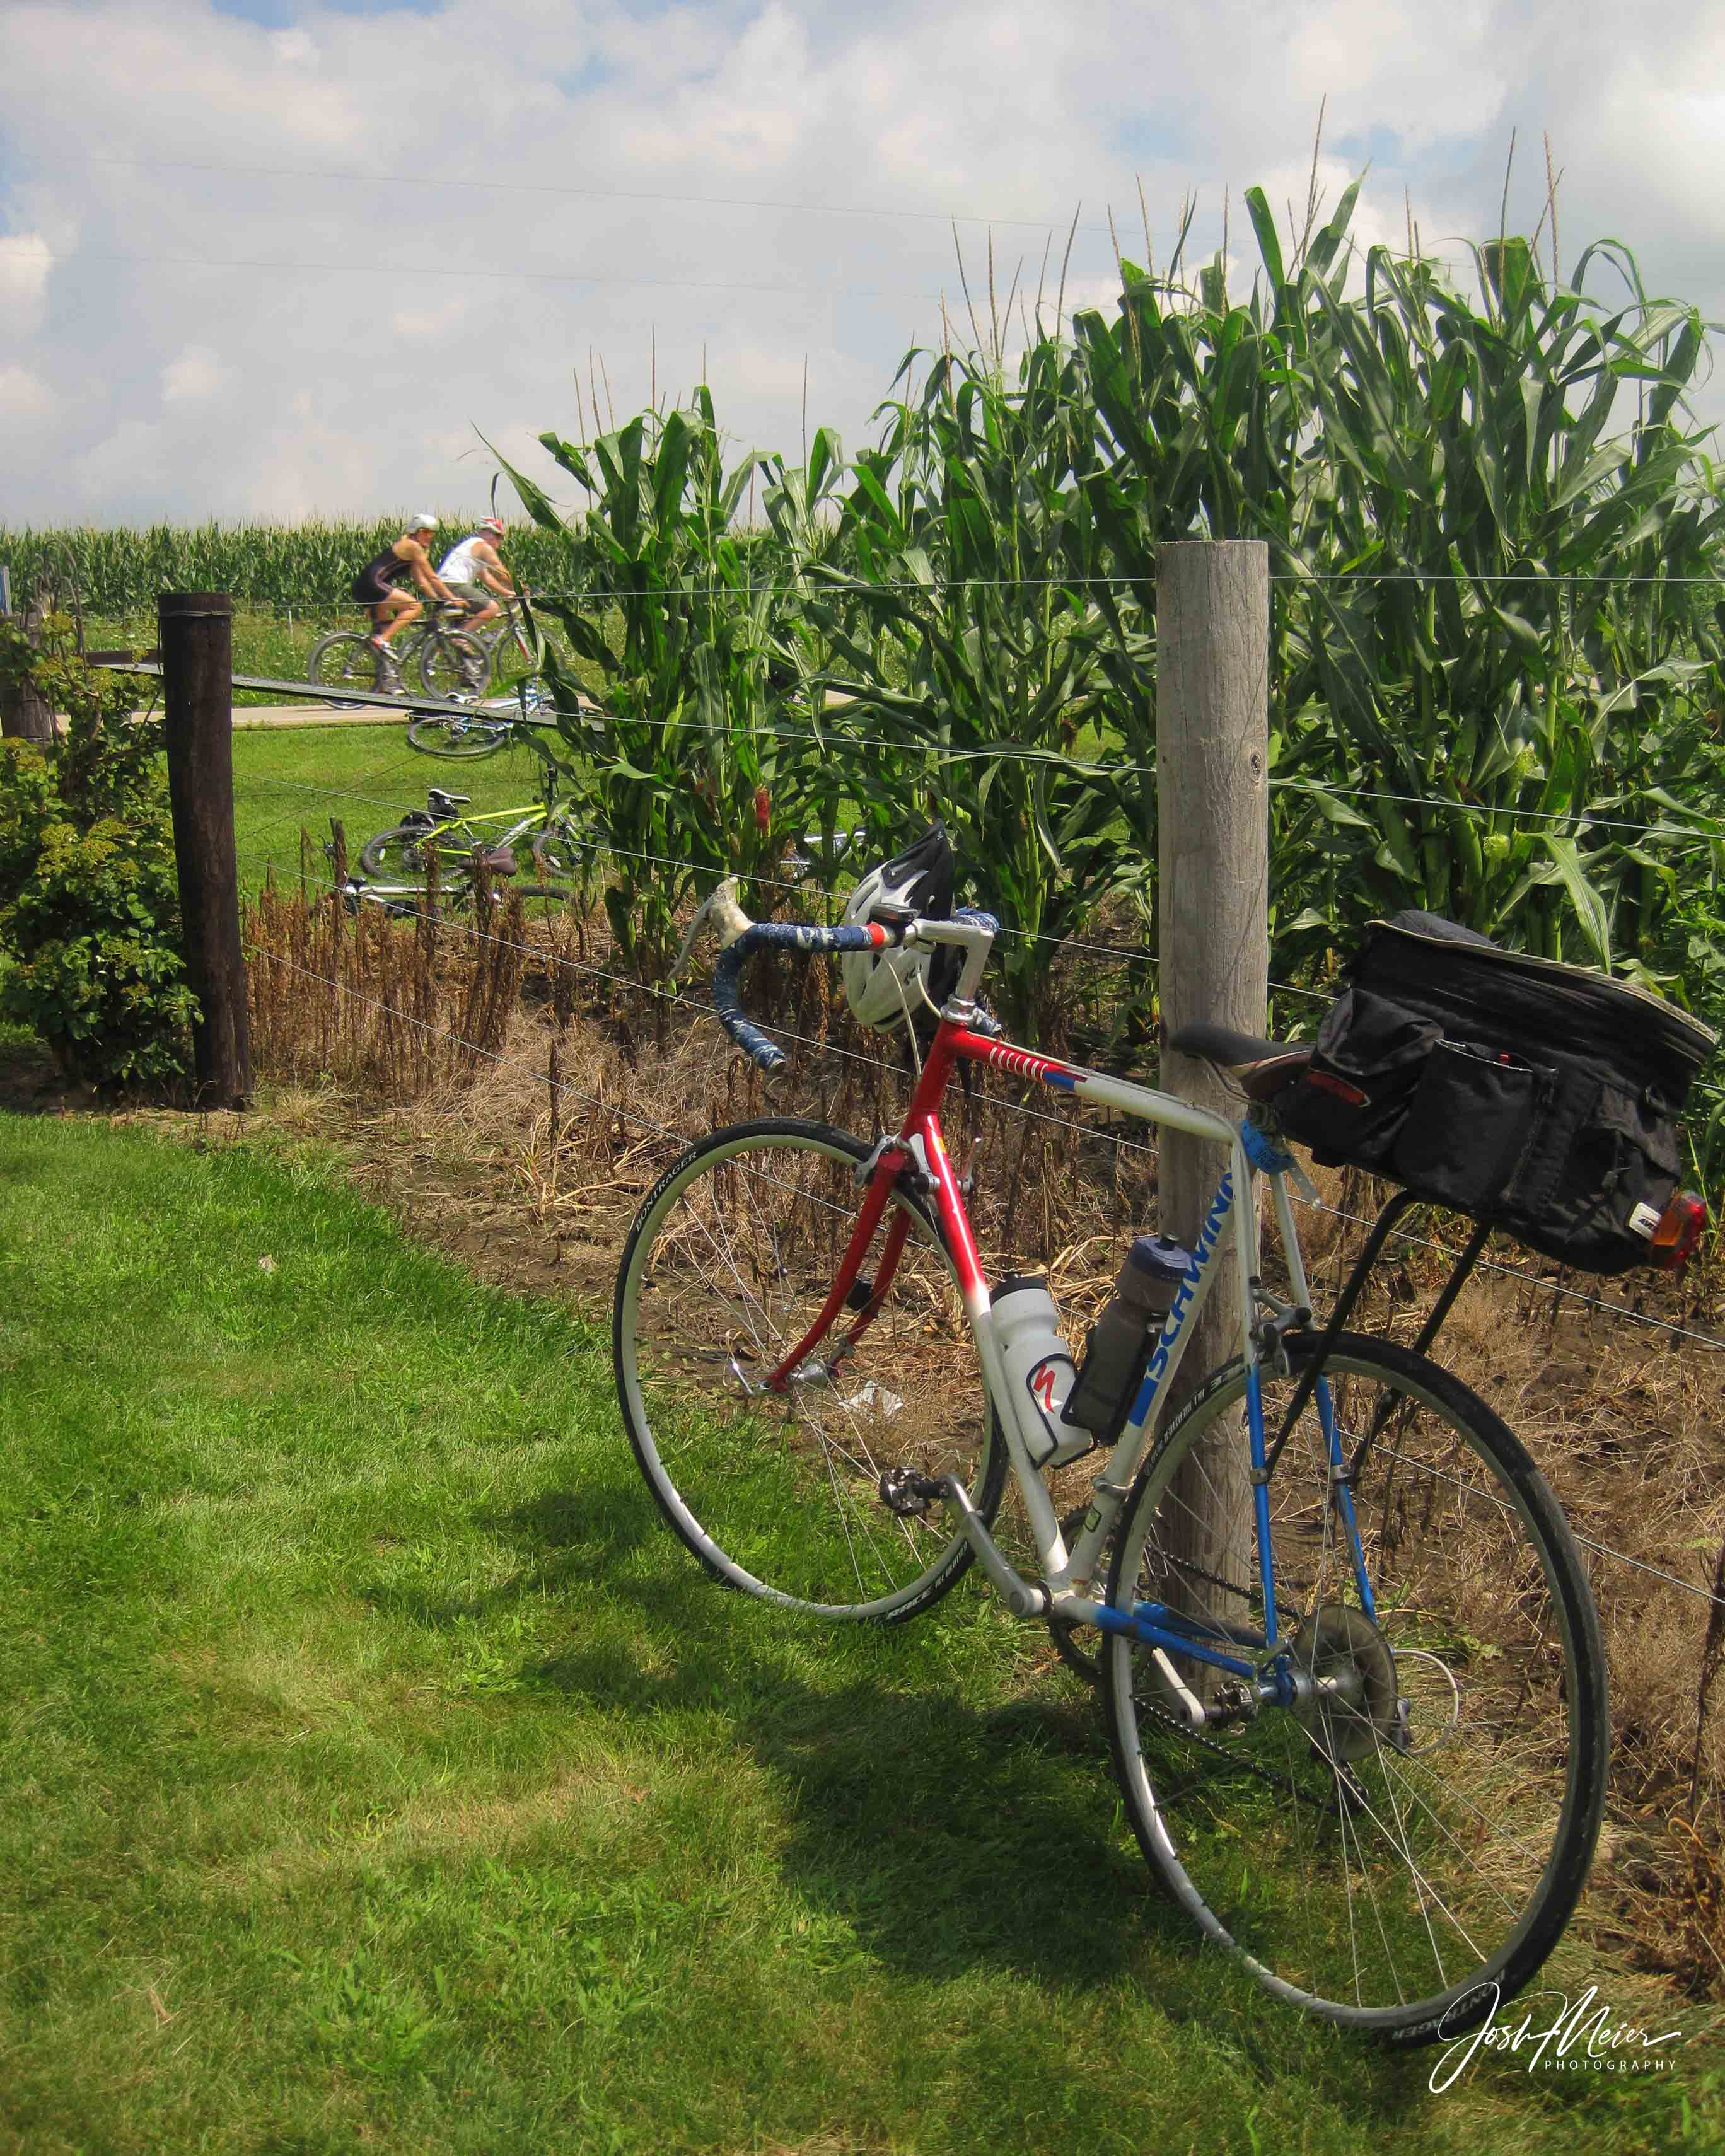 A classic Iowa summer scene- a vintage Schwinn touring bike parked beside a cornfield with other cyclists passing in the background...